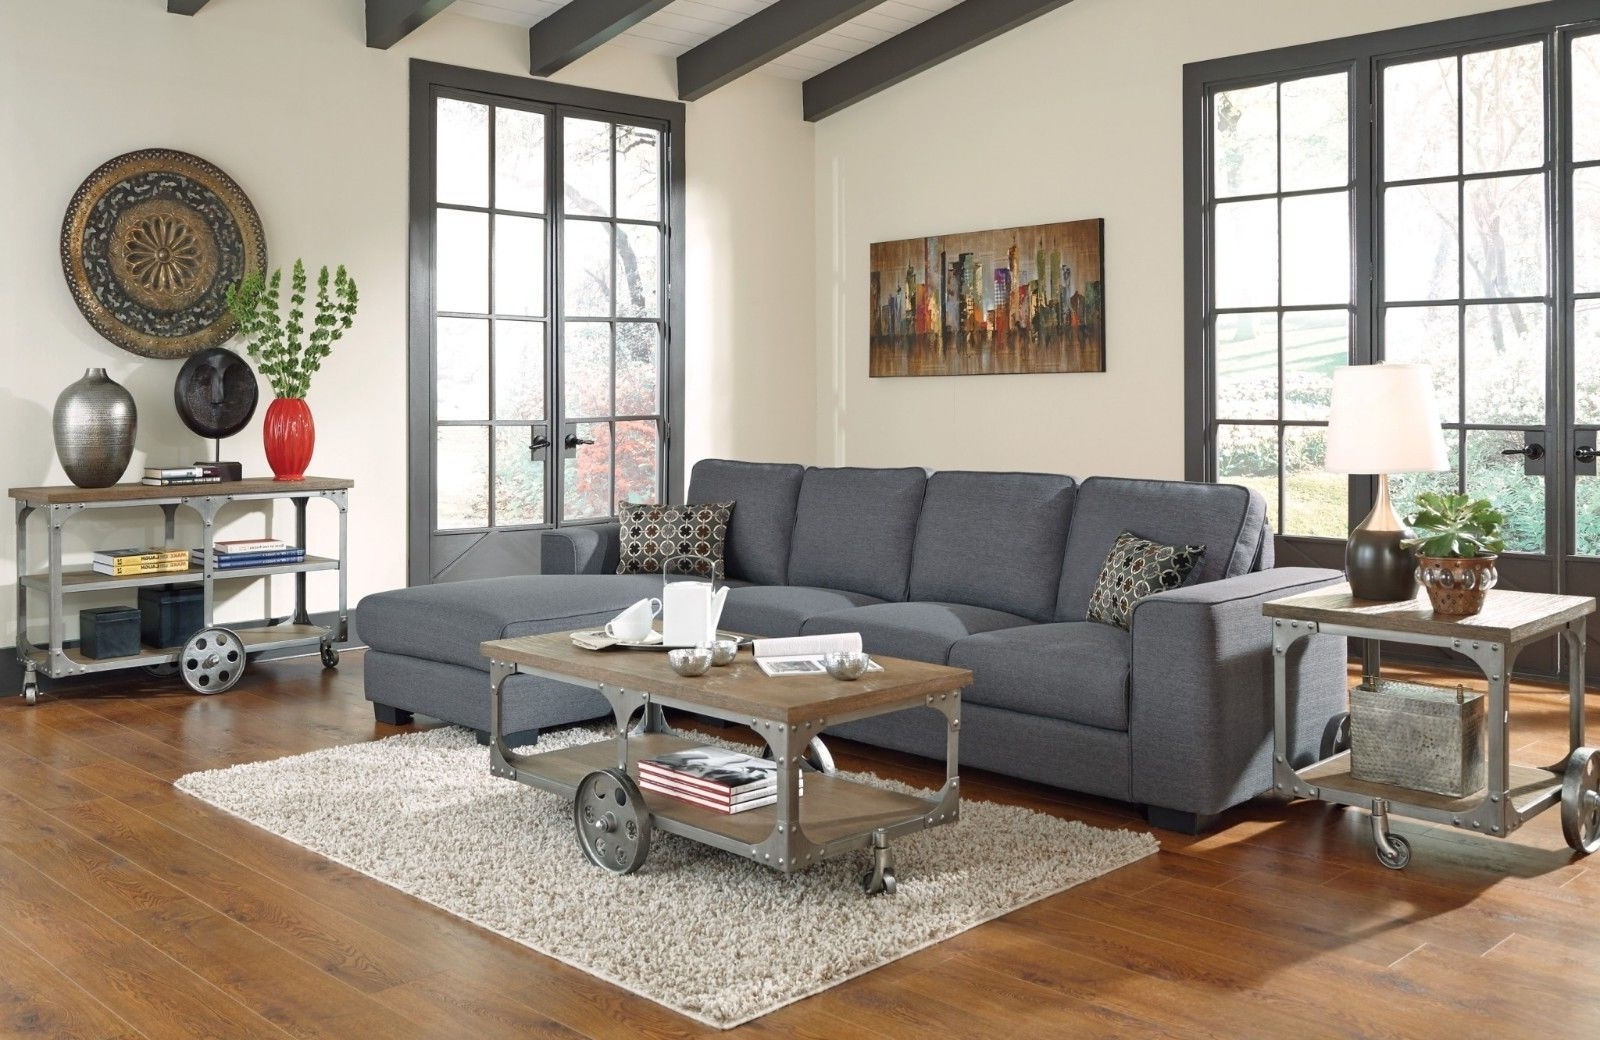 Widely Used Living Room : Brown Sofa Decor Sectional Couch Design Ideas Living Regarding Sectional Sofas Decorating (View 4 of 20)